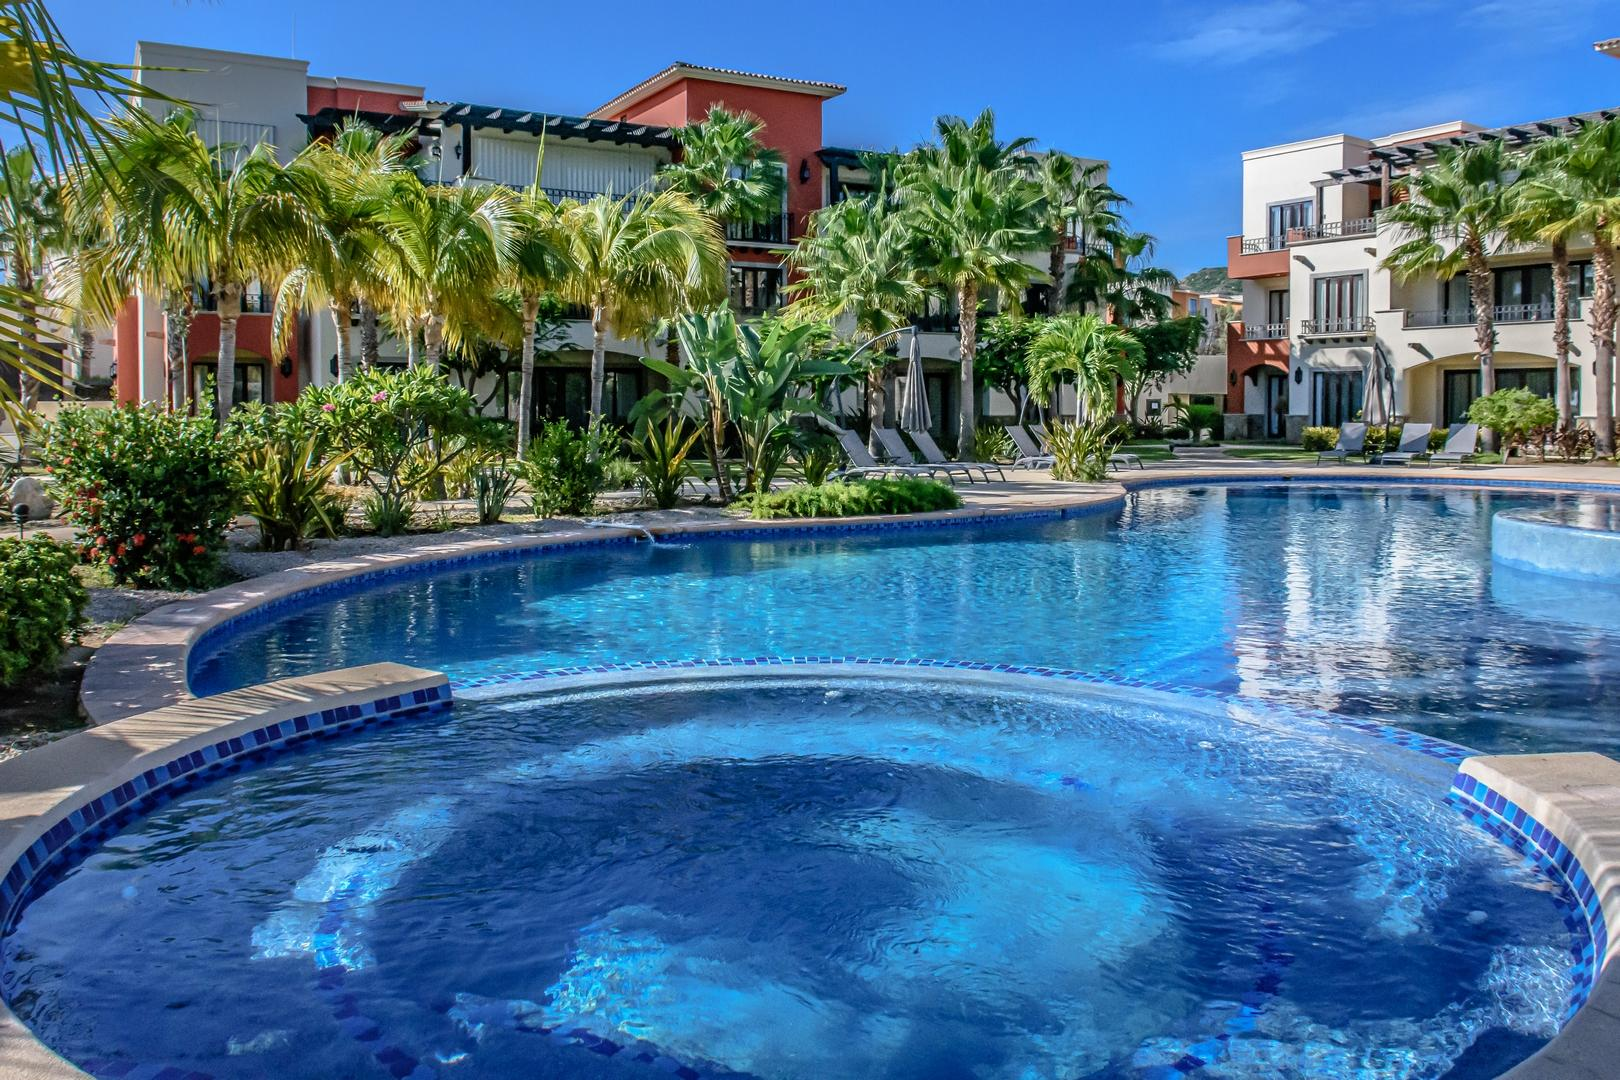 San Jose del Cabo, 3 Bedrooms Bedrooms, 5 Rooms Rooms,2 BathroomsBathrooms,Condo,For Sale,Las Villas De Mexico,19-2685